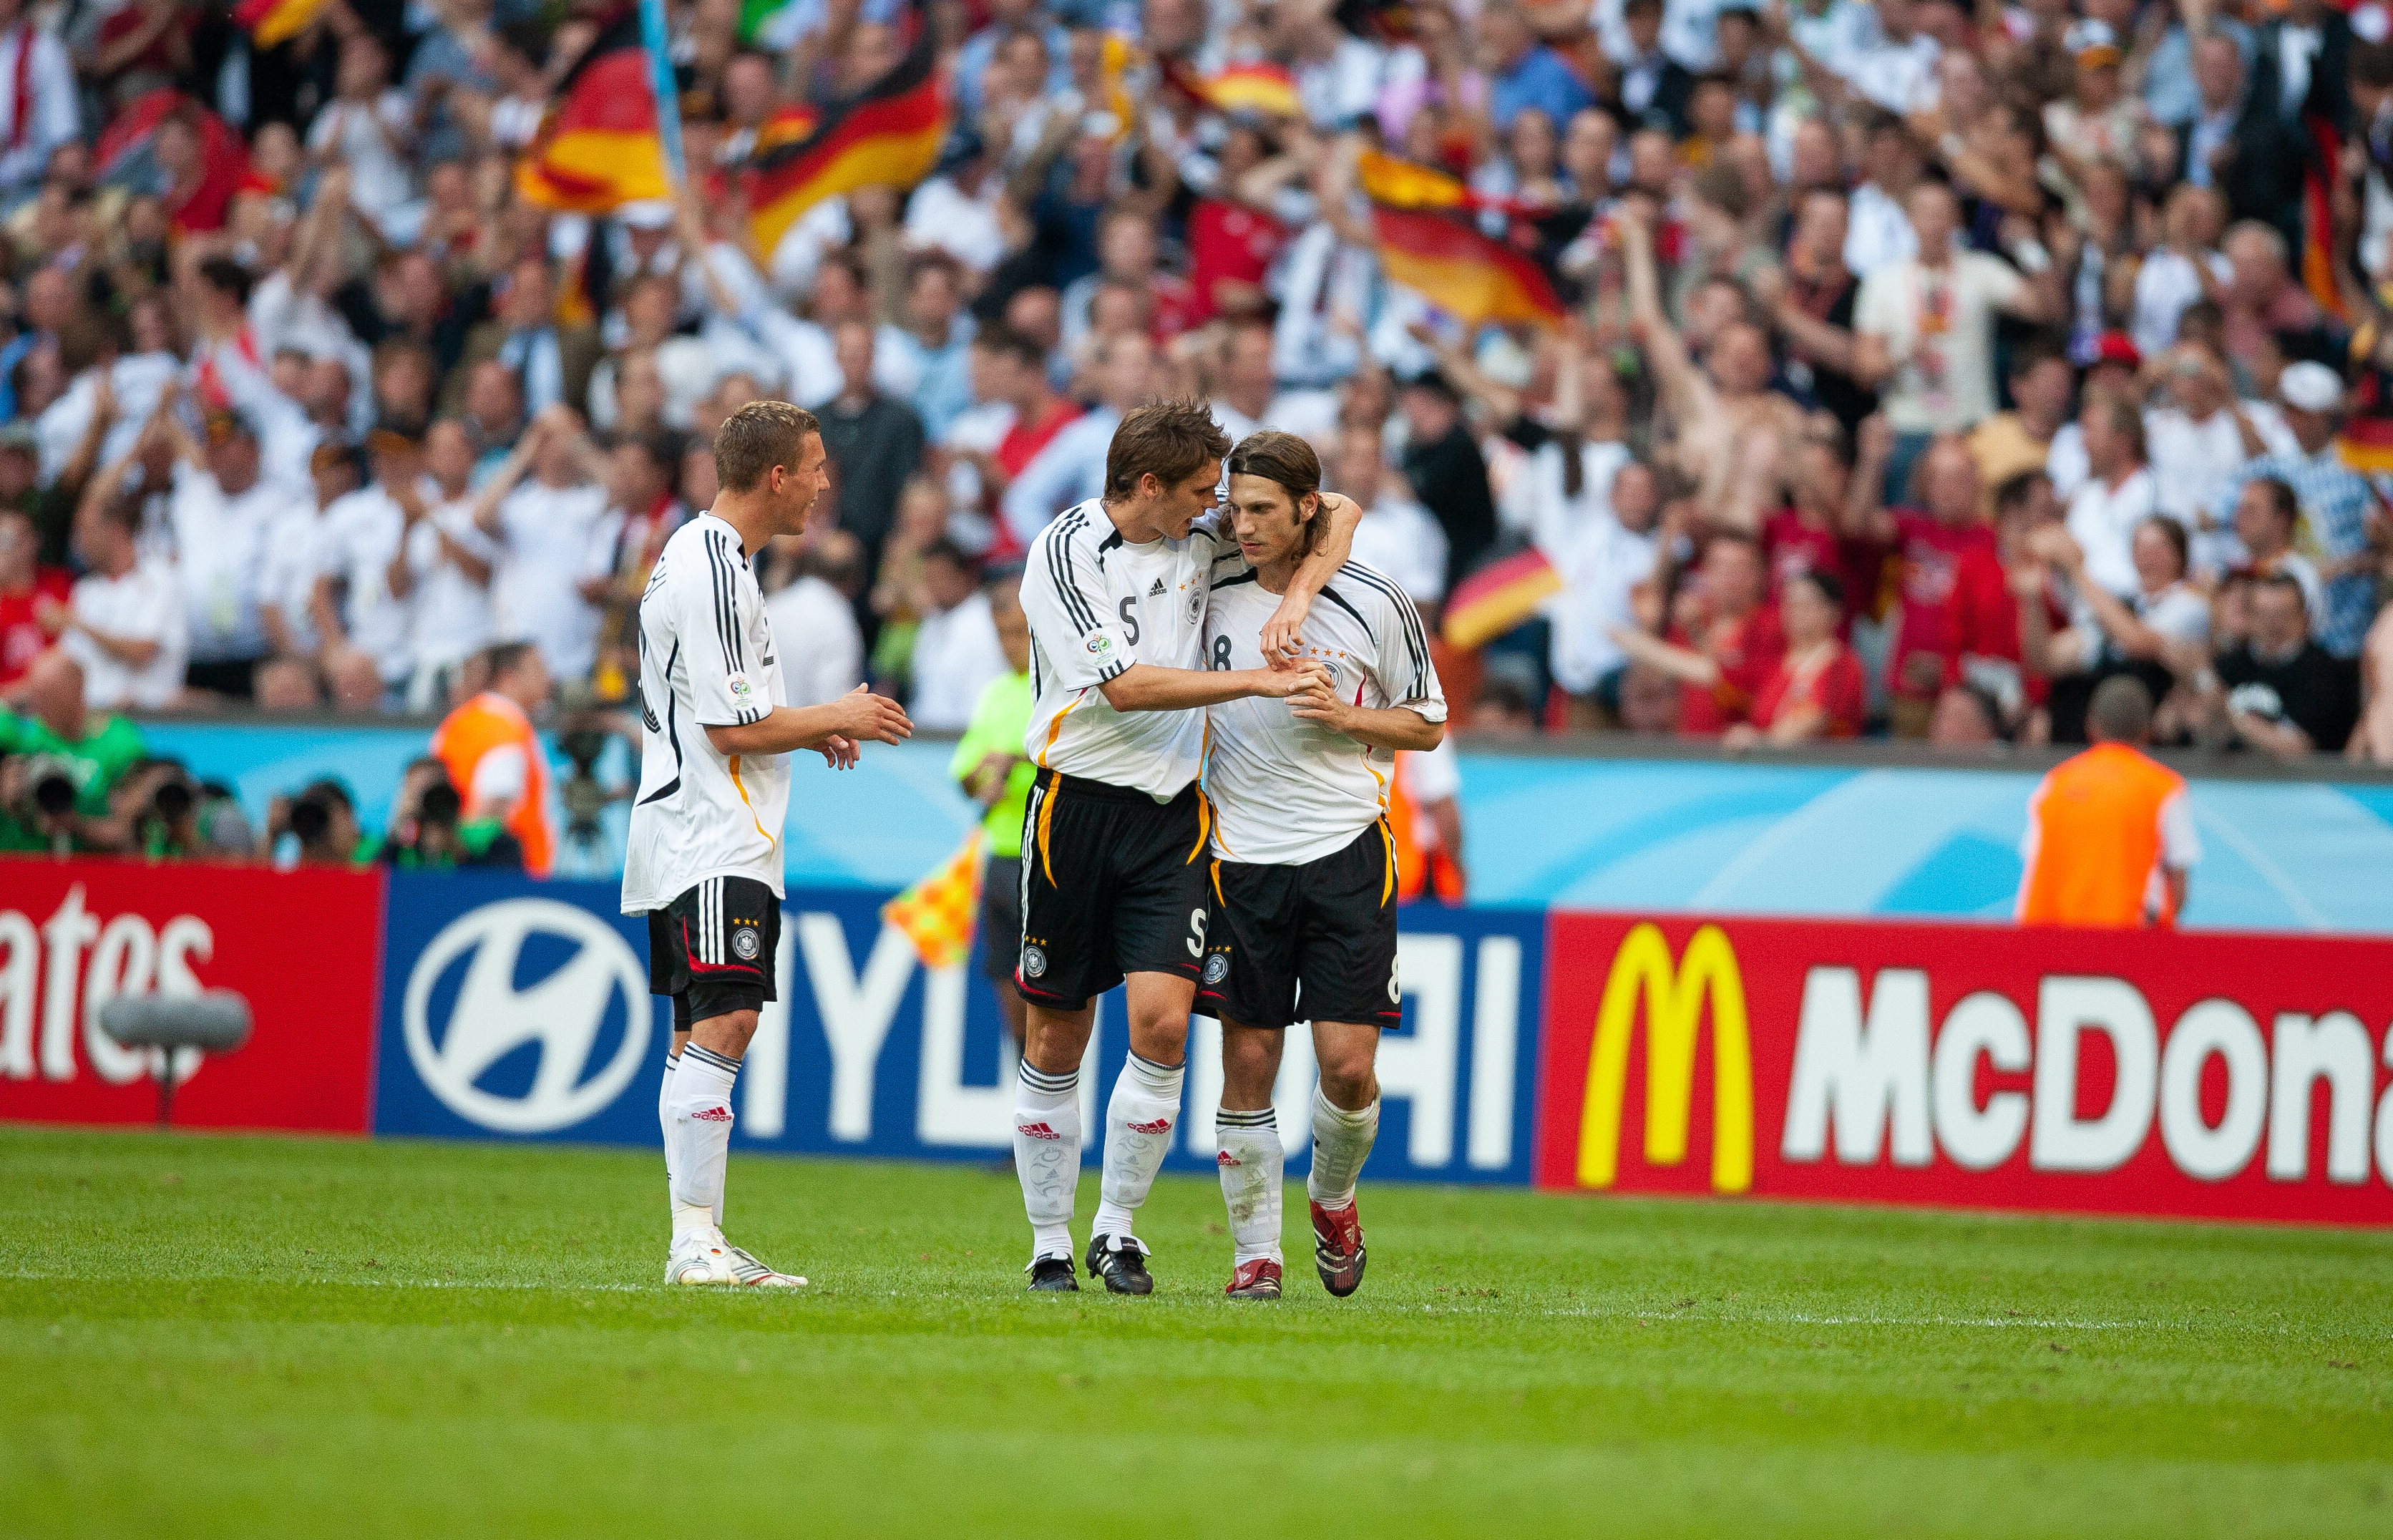 Germany v Costa Rica - The FIFA World Cup 2006